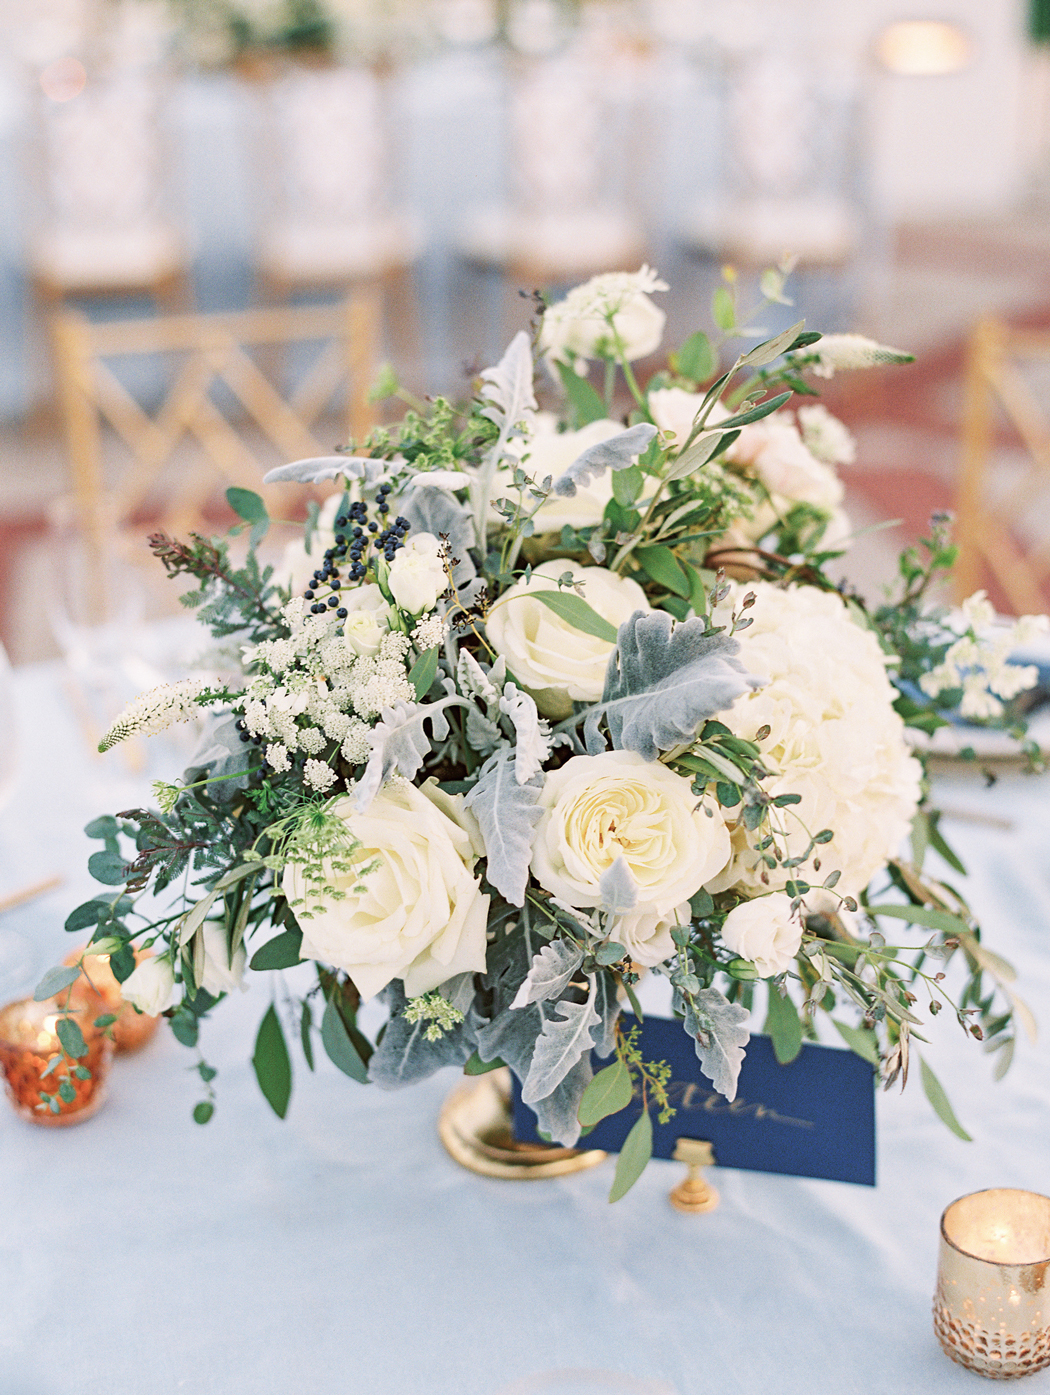 white blooms, lambs ear, and bright foliage in gold vessels centerpieces